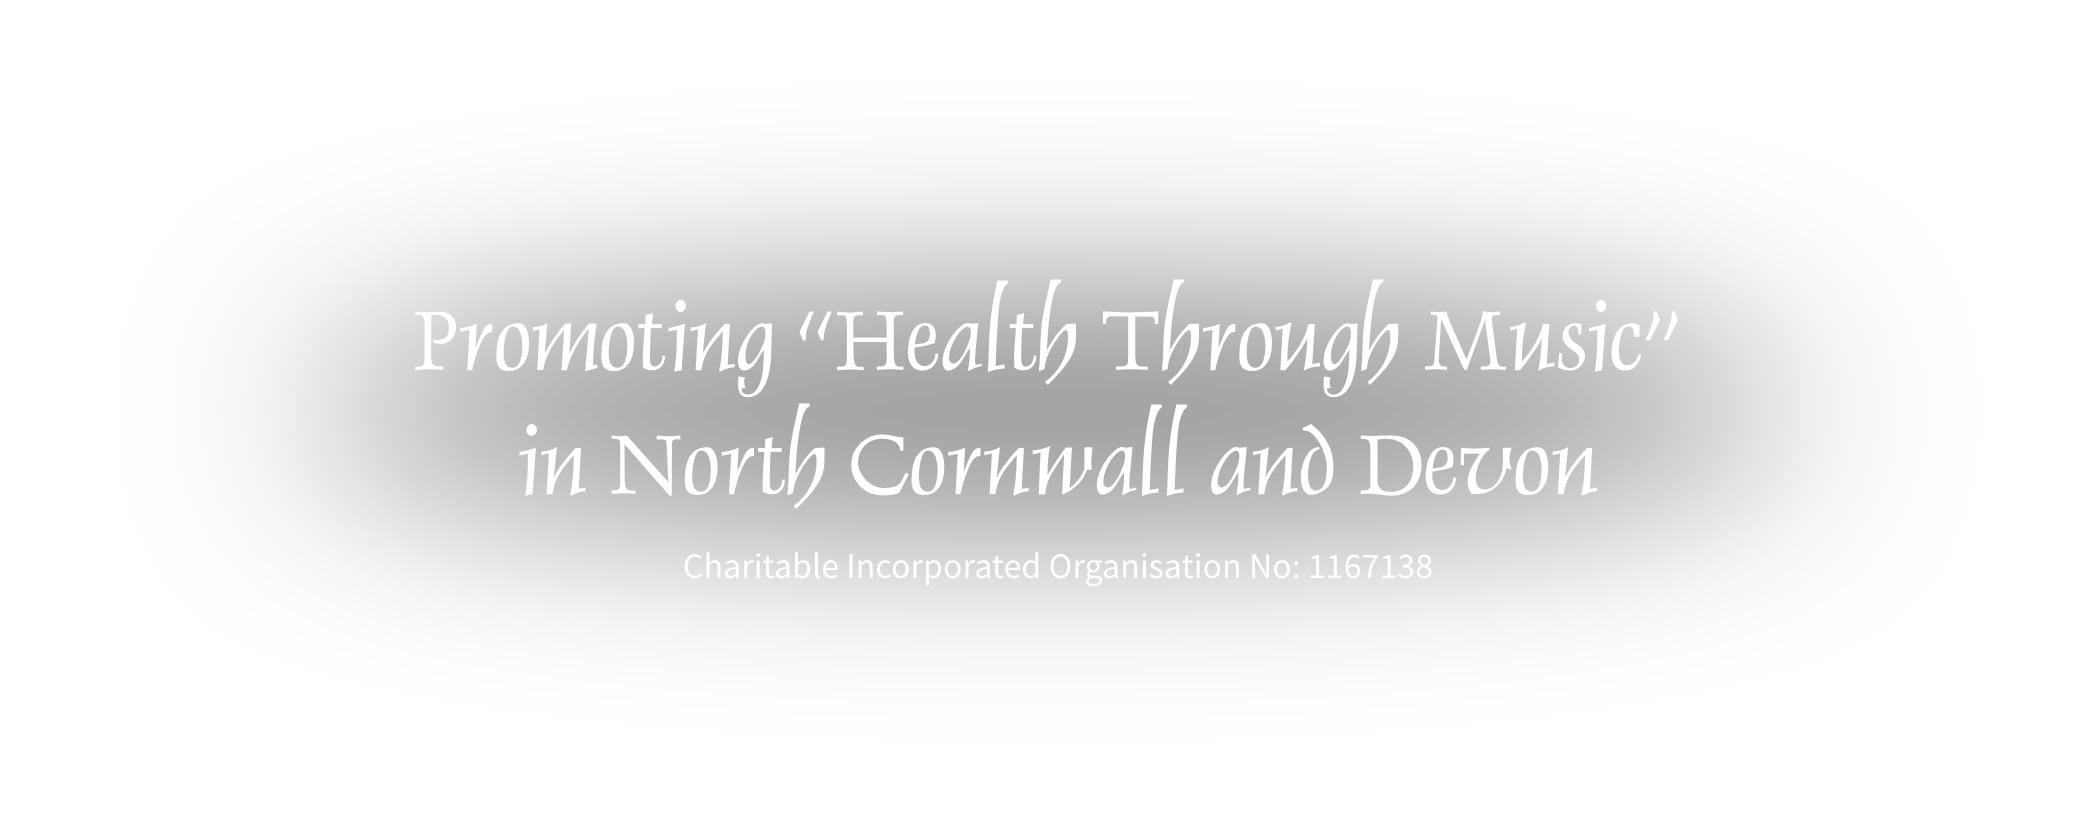 Promoting Health through Music in North Devon and Cornwall